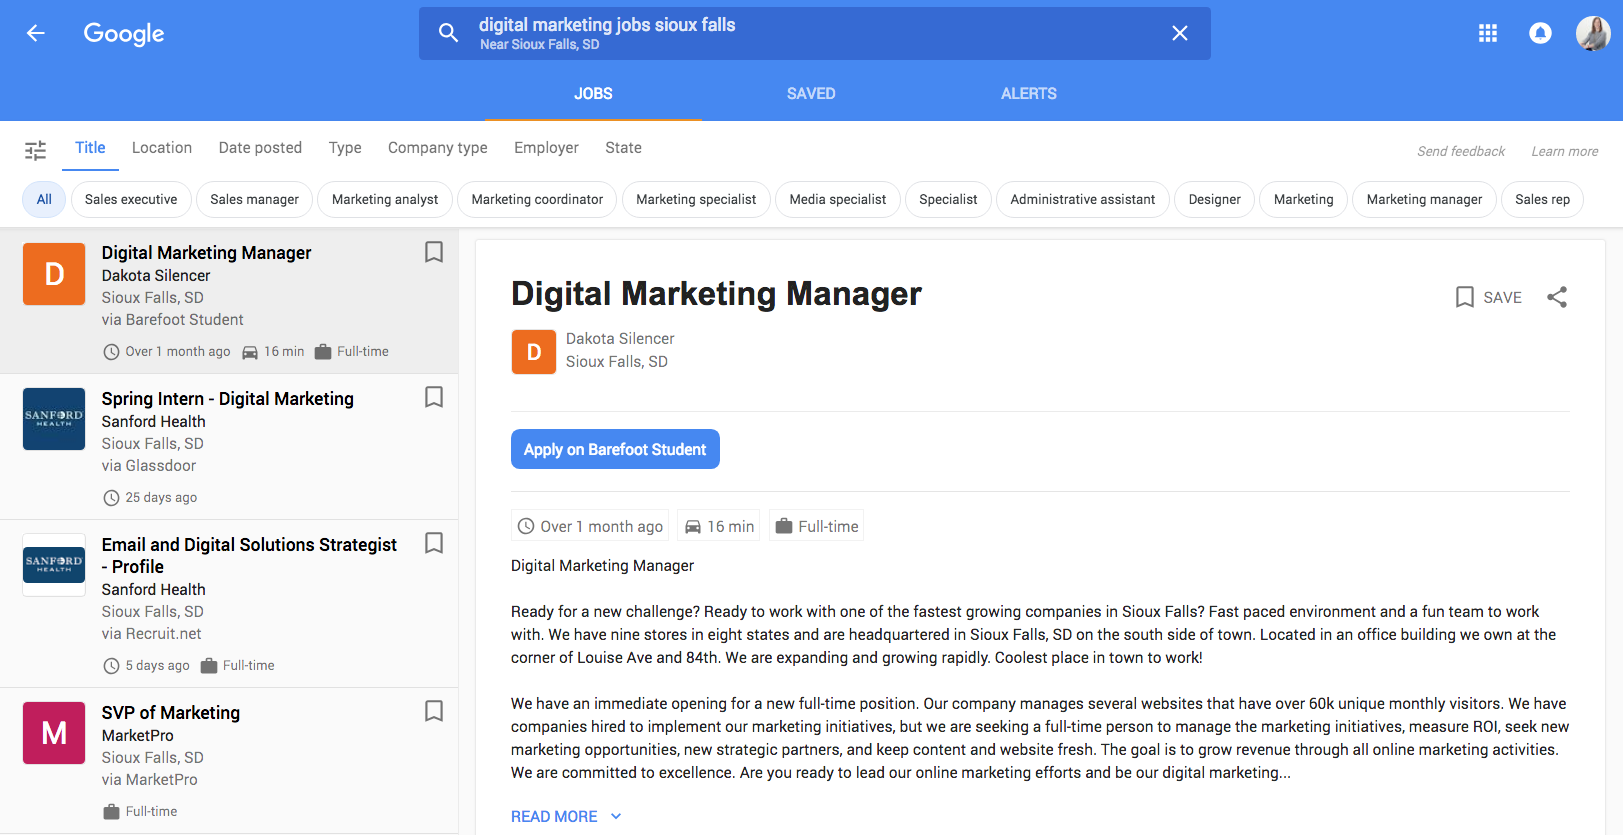 Google Jobs is a great way to post open positions for your business